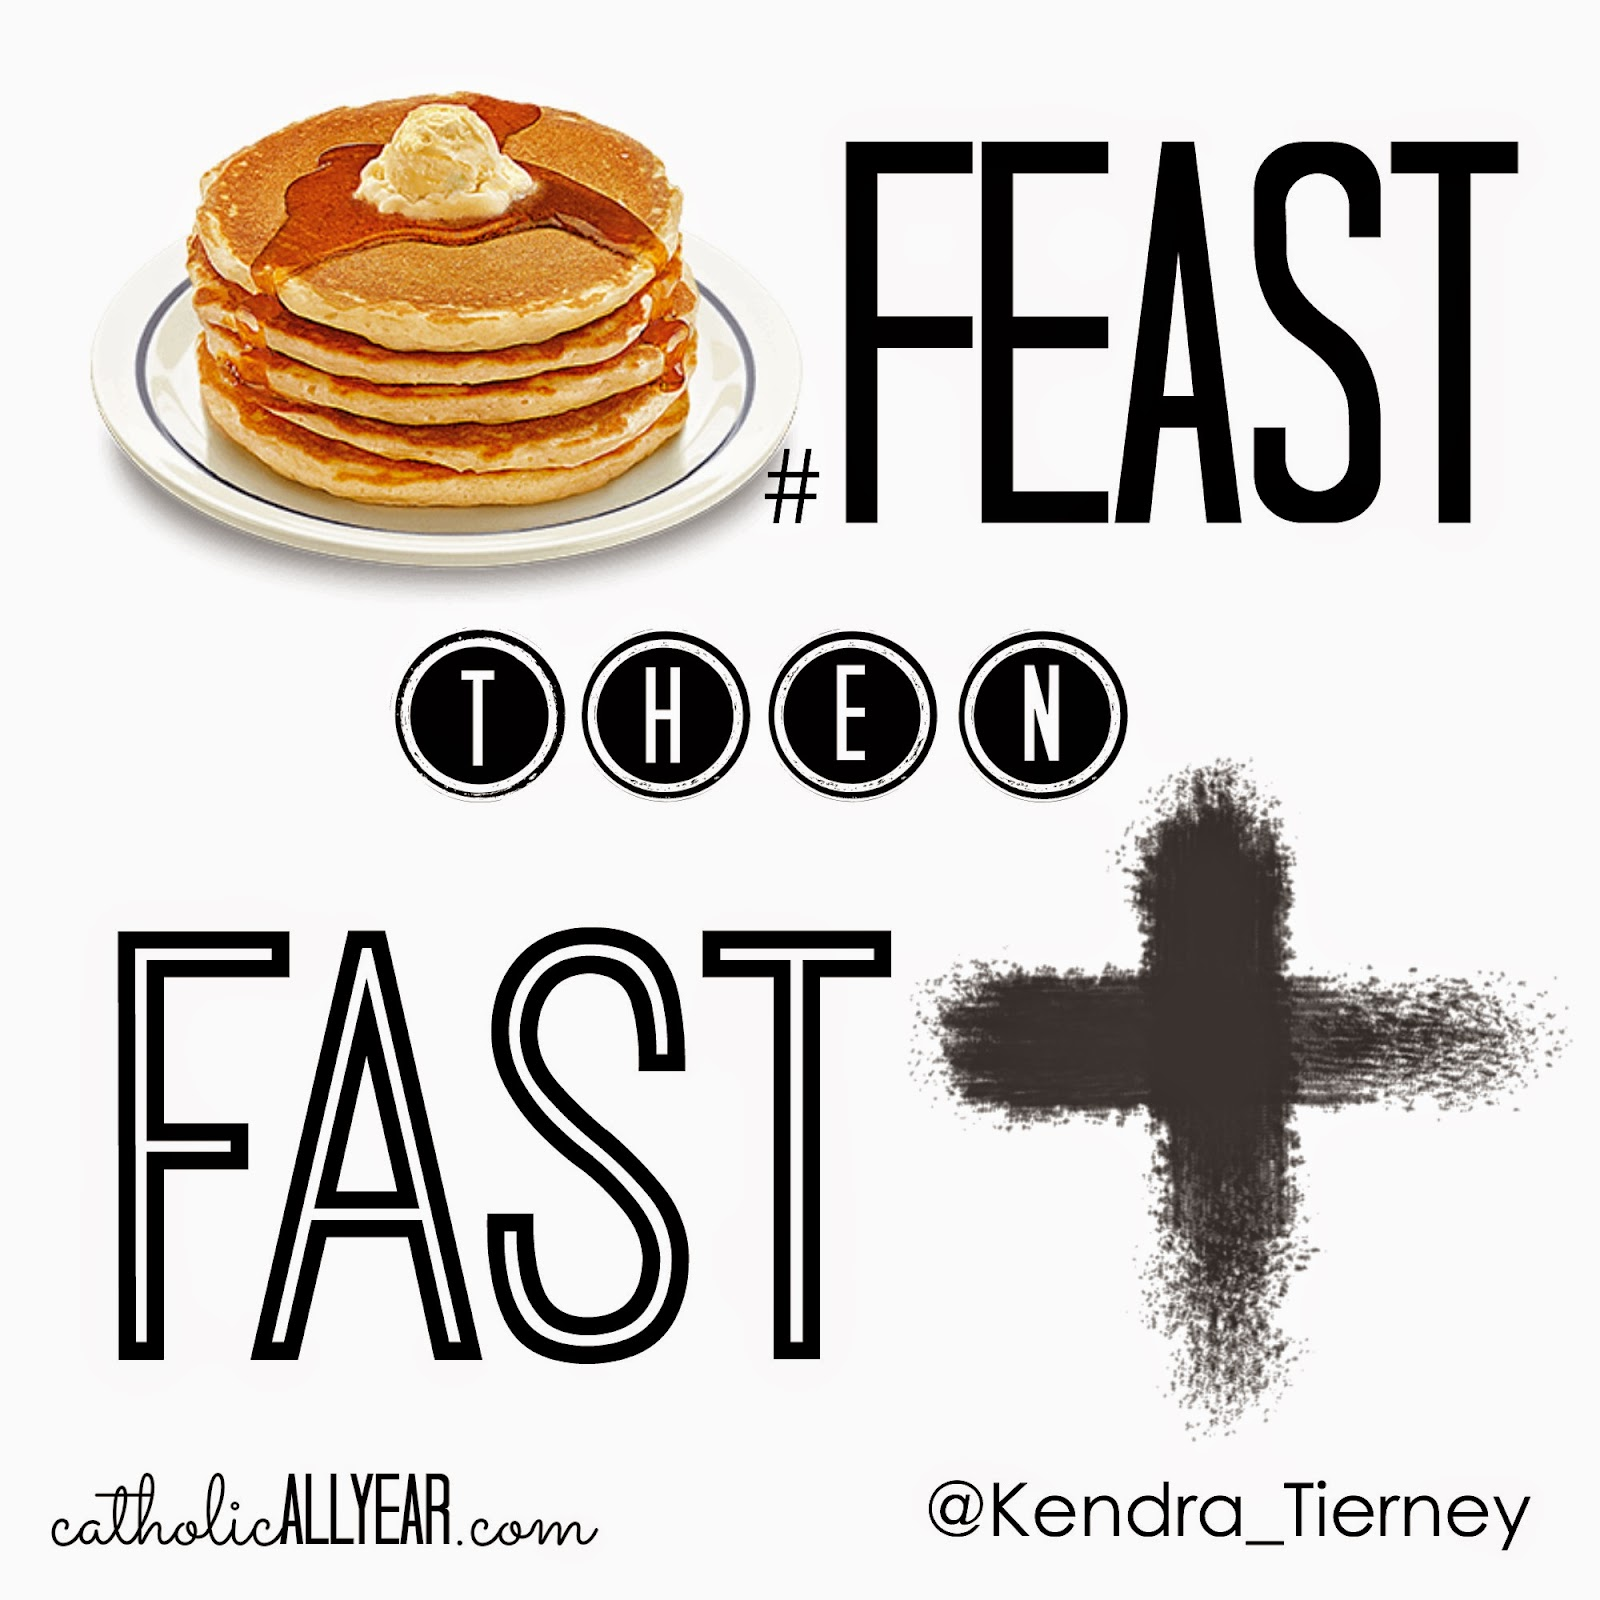 Catholic All Year Feast Then Fast Tips For Fat Tuesday